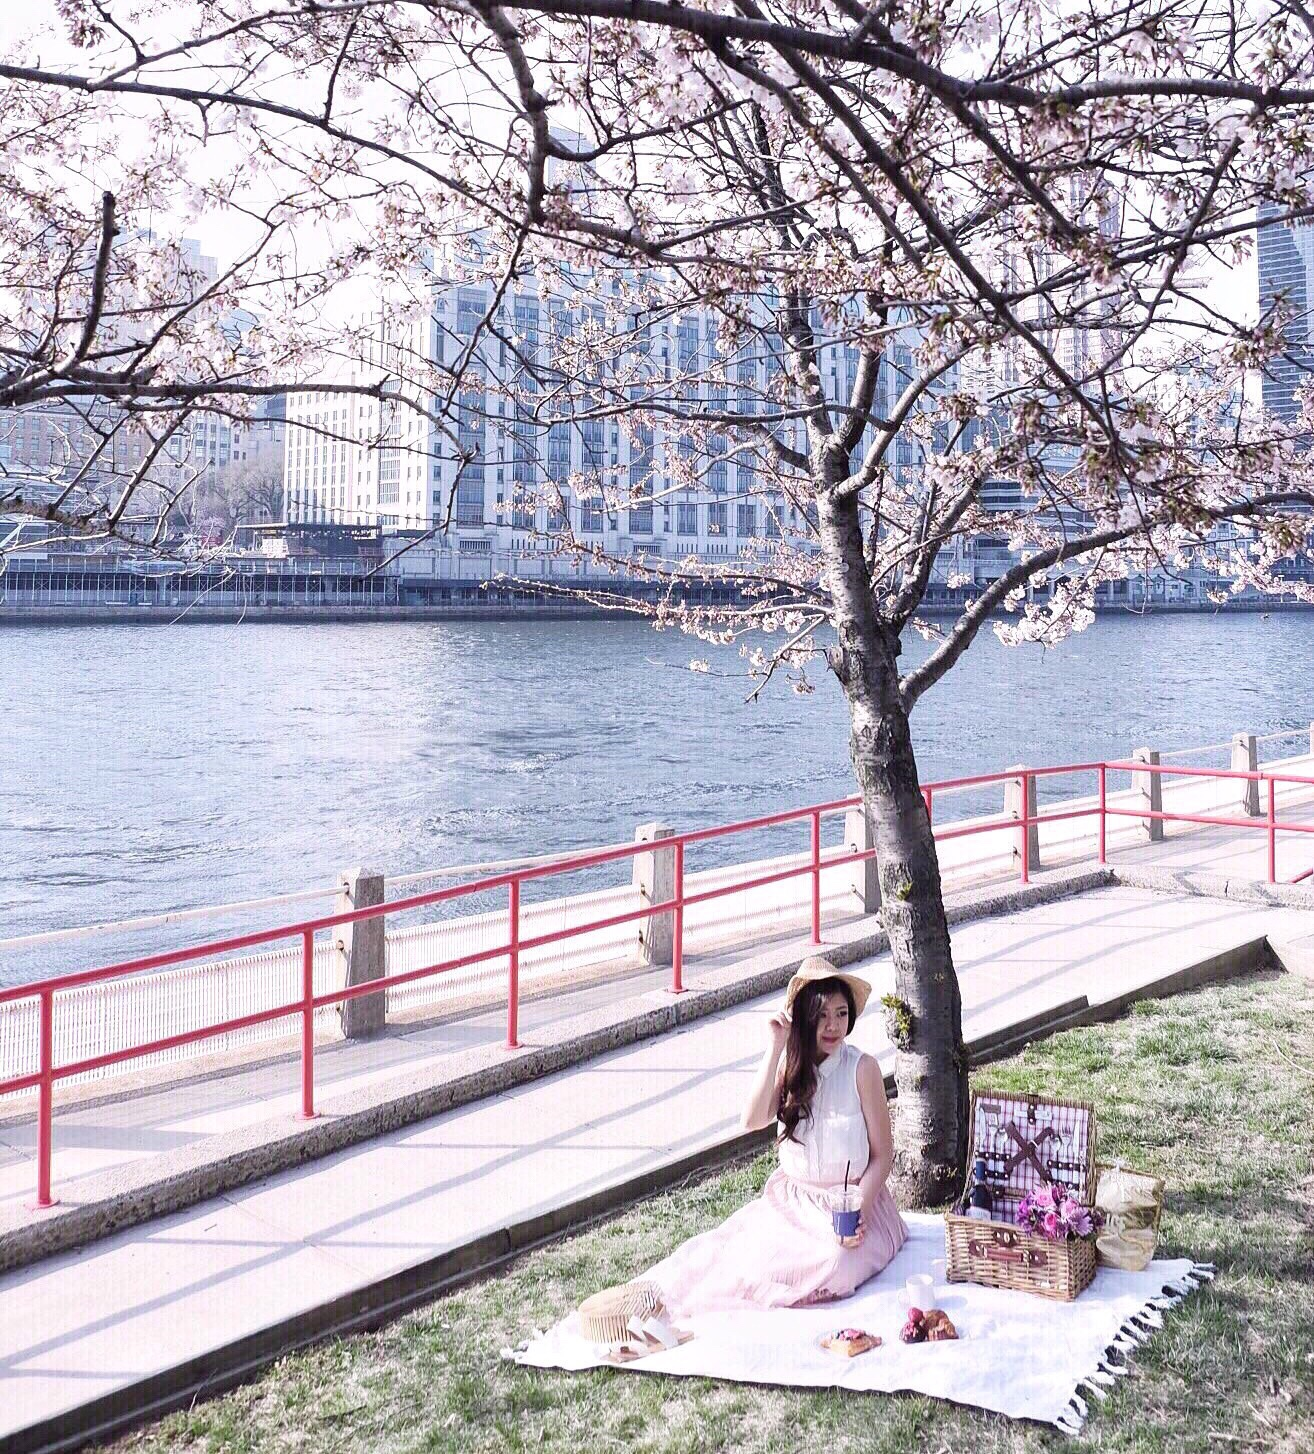 roosevelt island cherry blossoms picnic